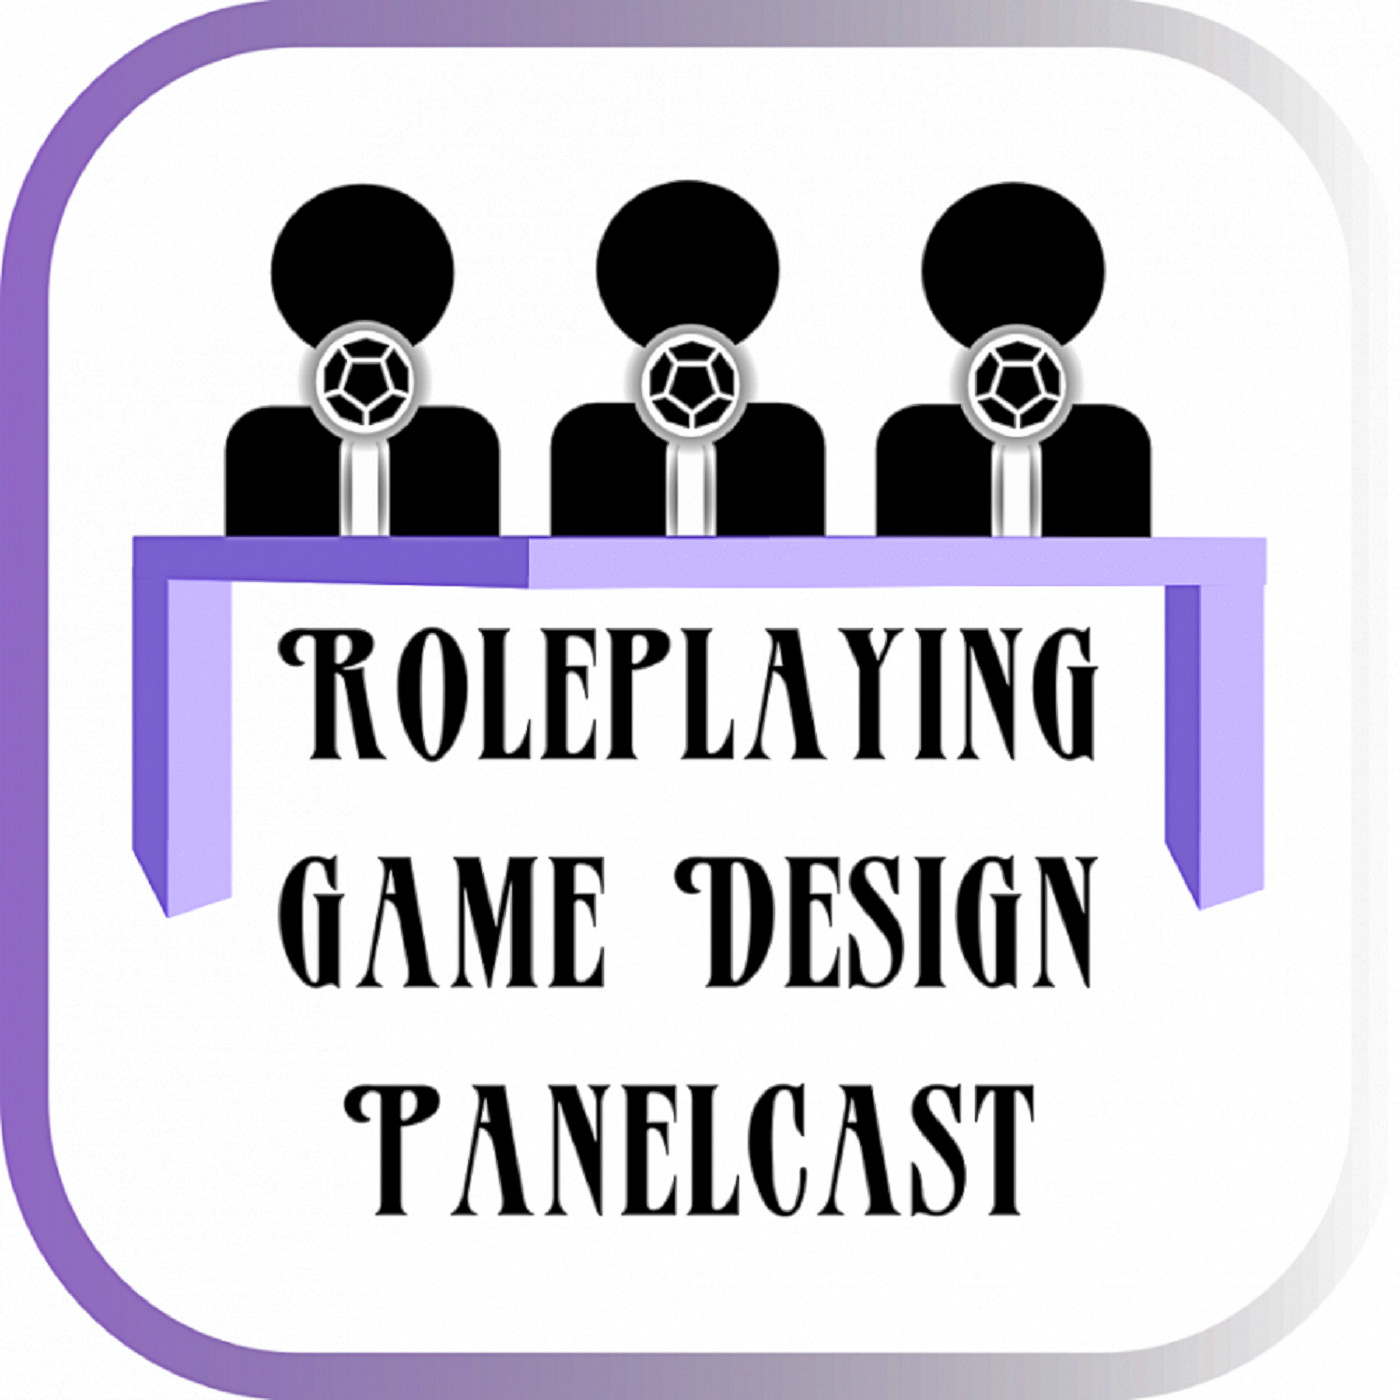 RPG Design Panelcast